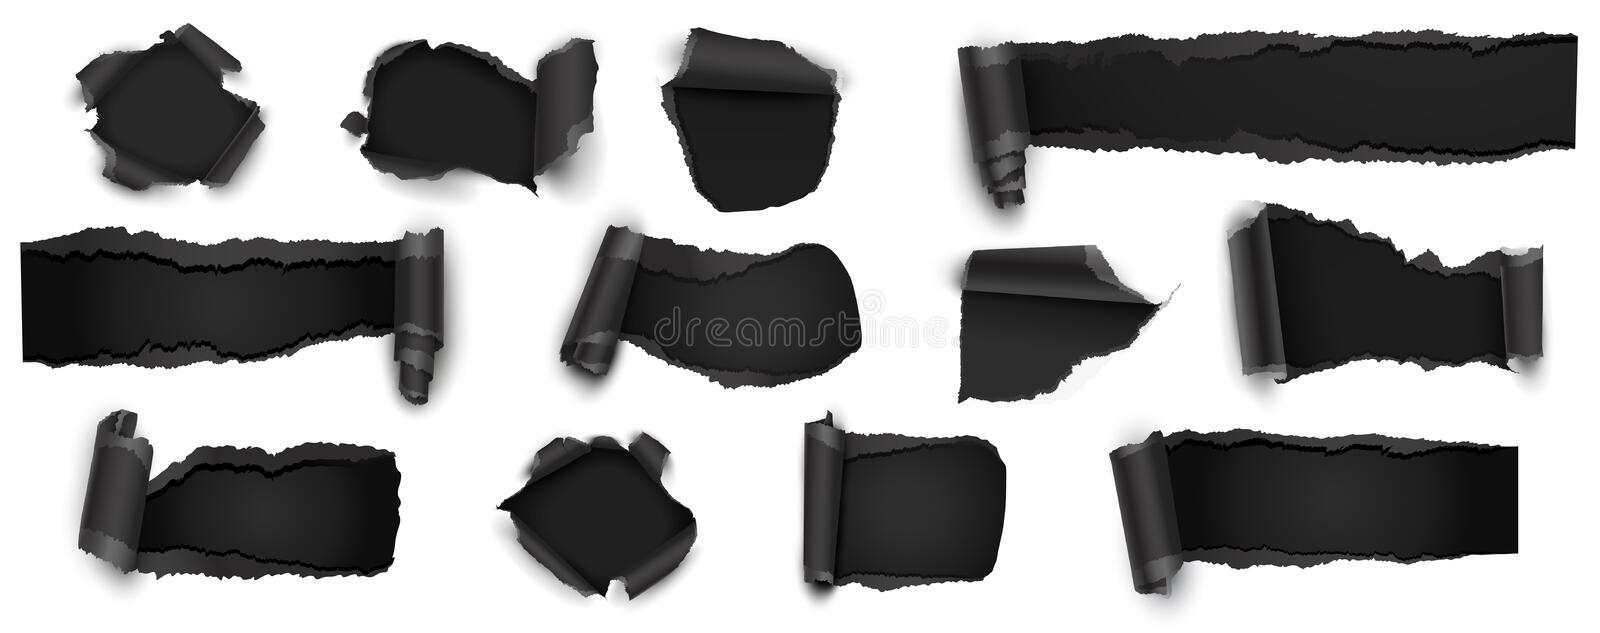 Collection of Torn Black Paper Isolated on White. Vector Illustration. Collection of Torn Black Paper Isolated on White, Sale, Discount. Vector Illustration stock illustration